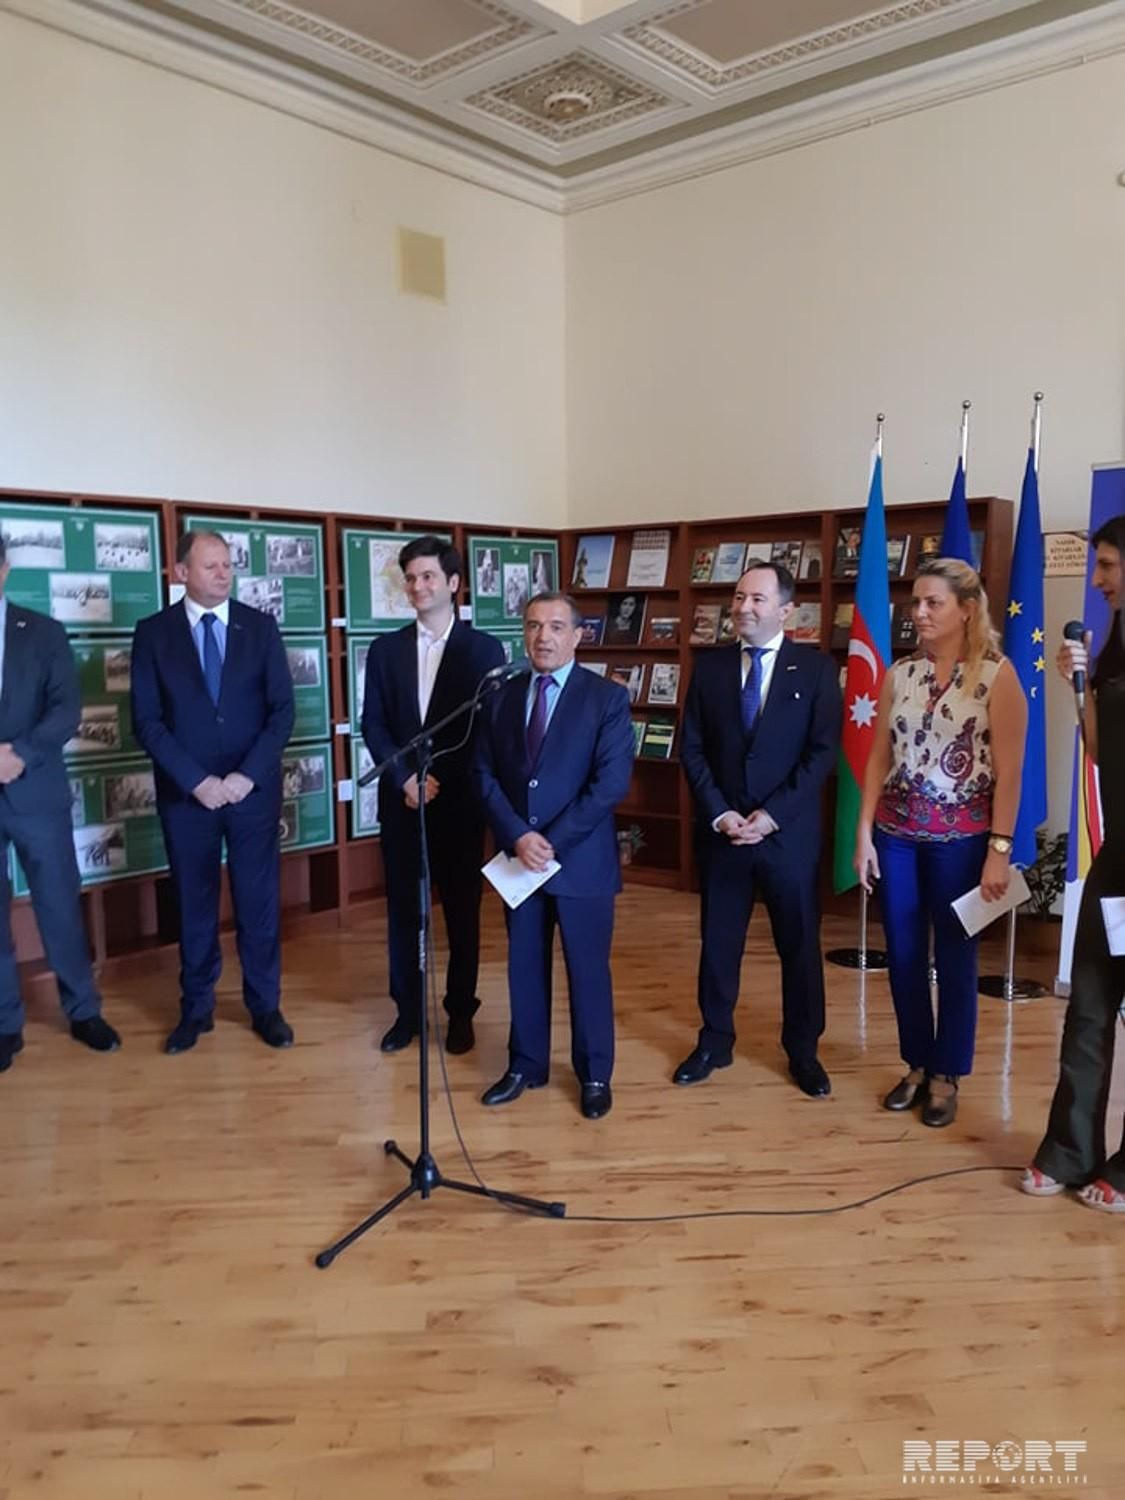 Exhibition dedicated to Centenary of Romanian Great Union held in Baku